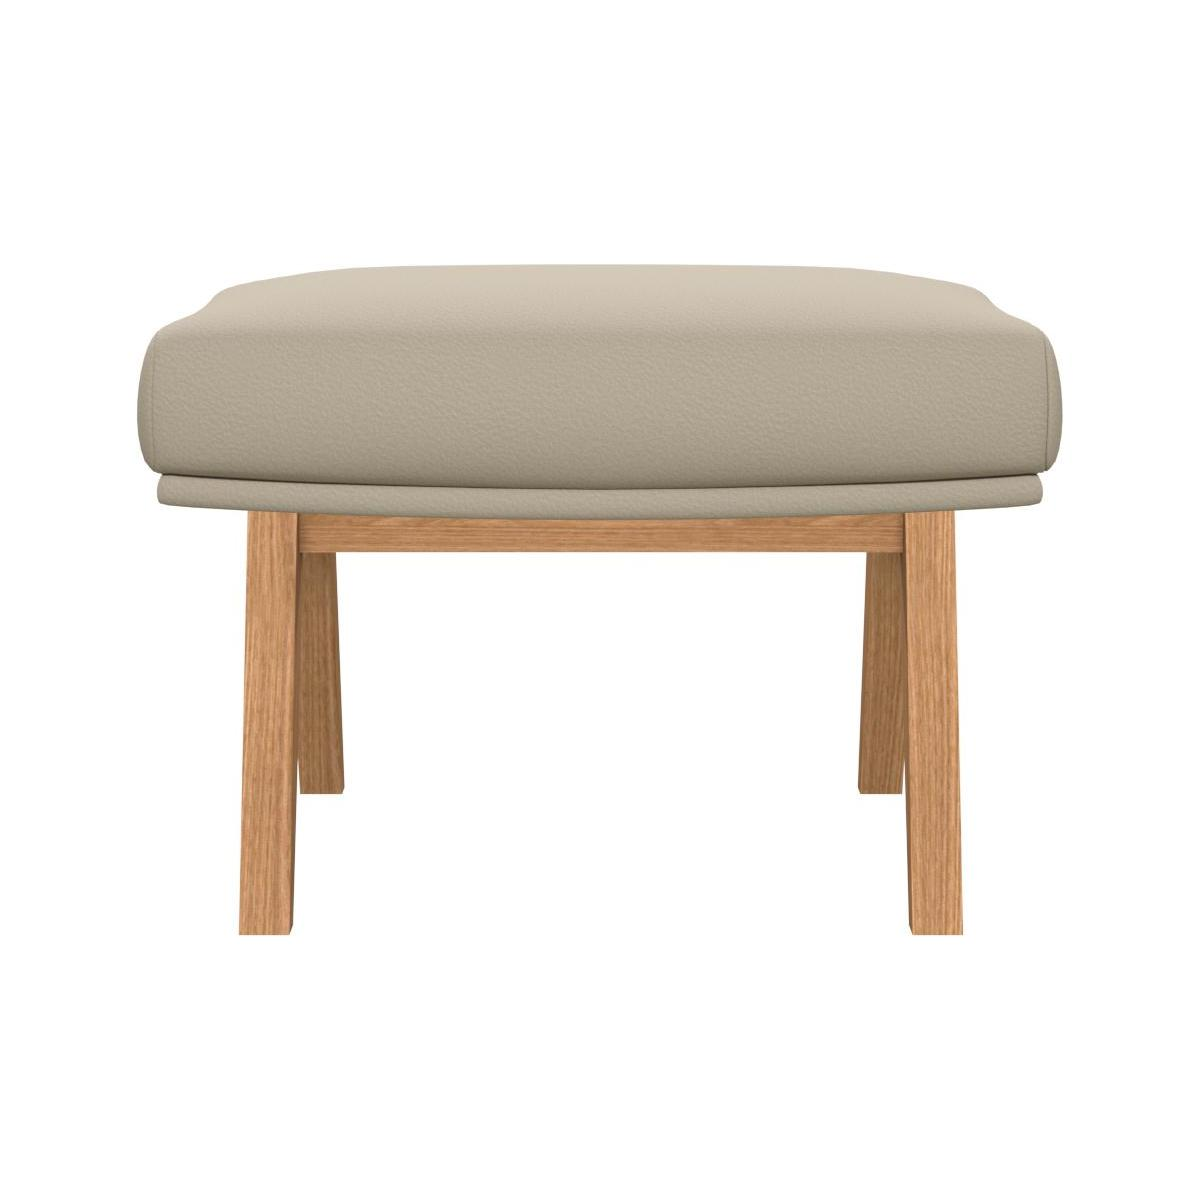 Footstool in Savoy semi-aniline leather, off white with oak legs n°3